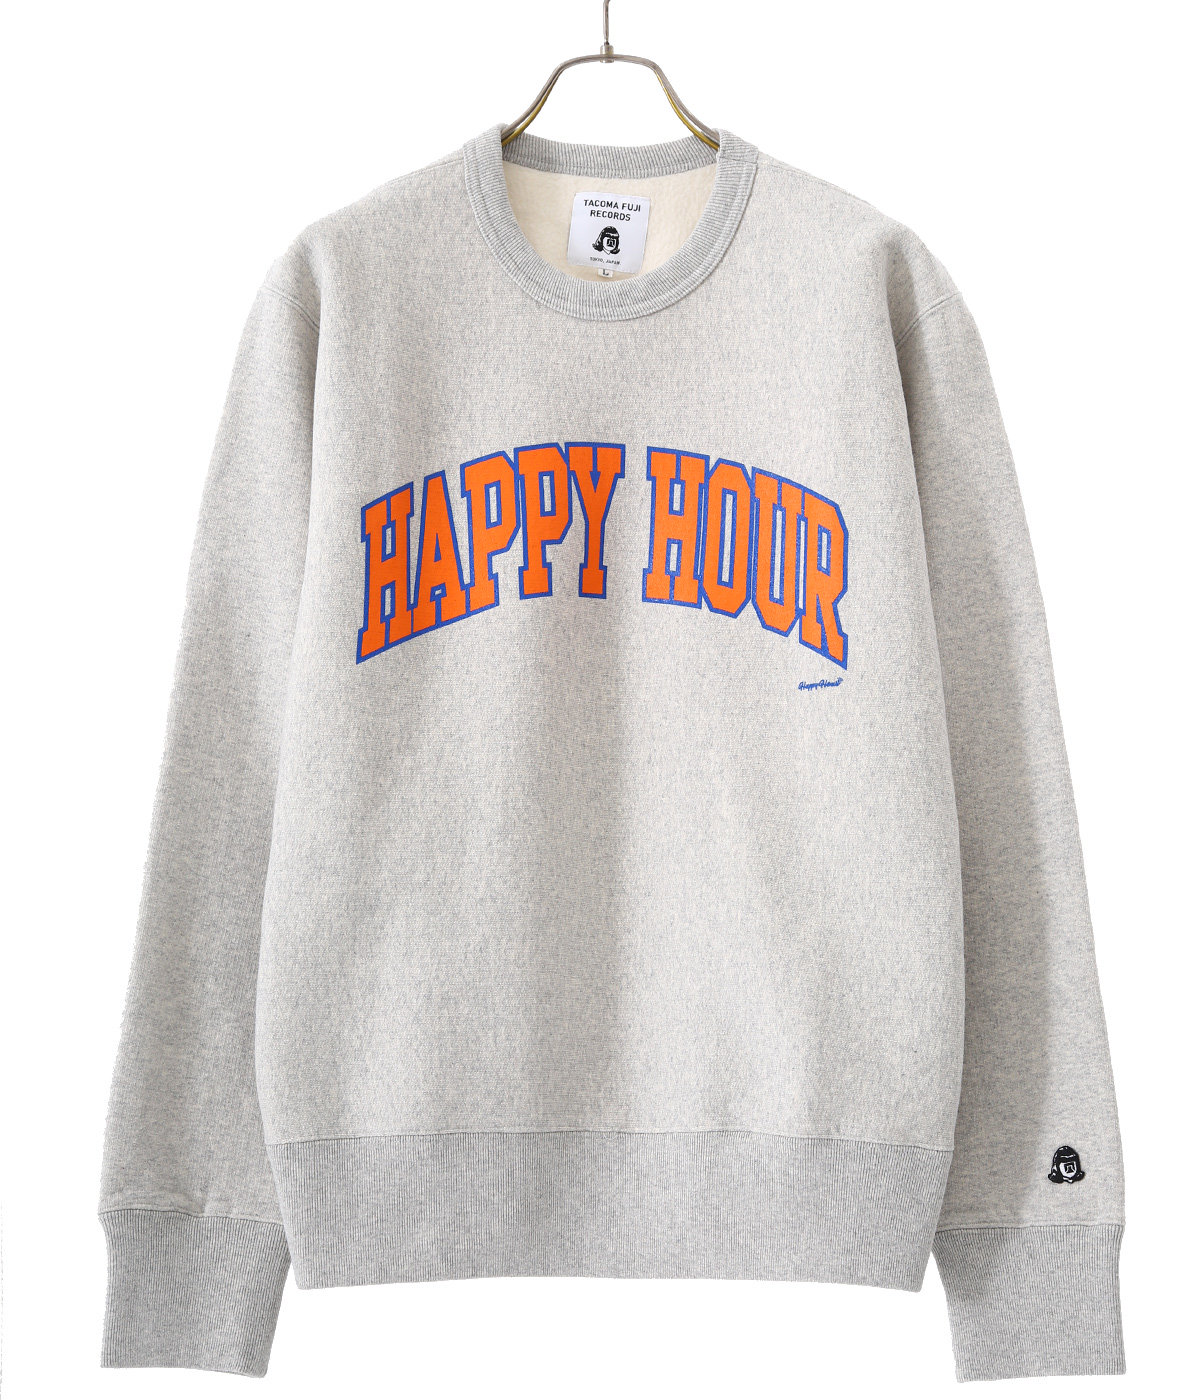 HAPPY HOUR SWEAT SHIRT